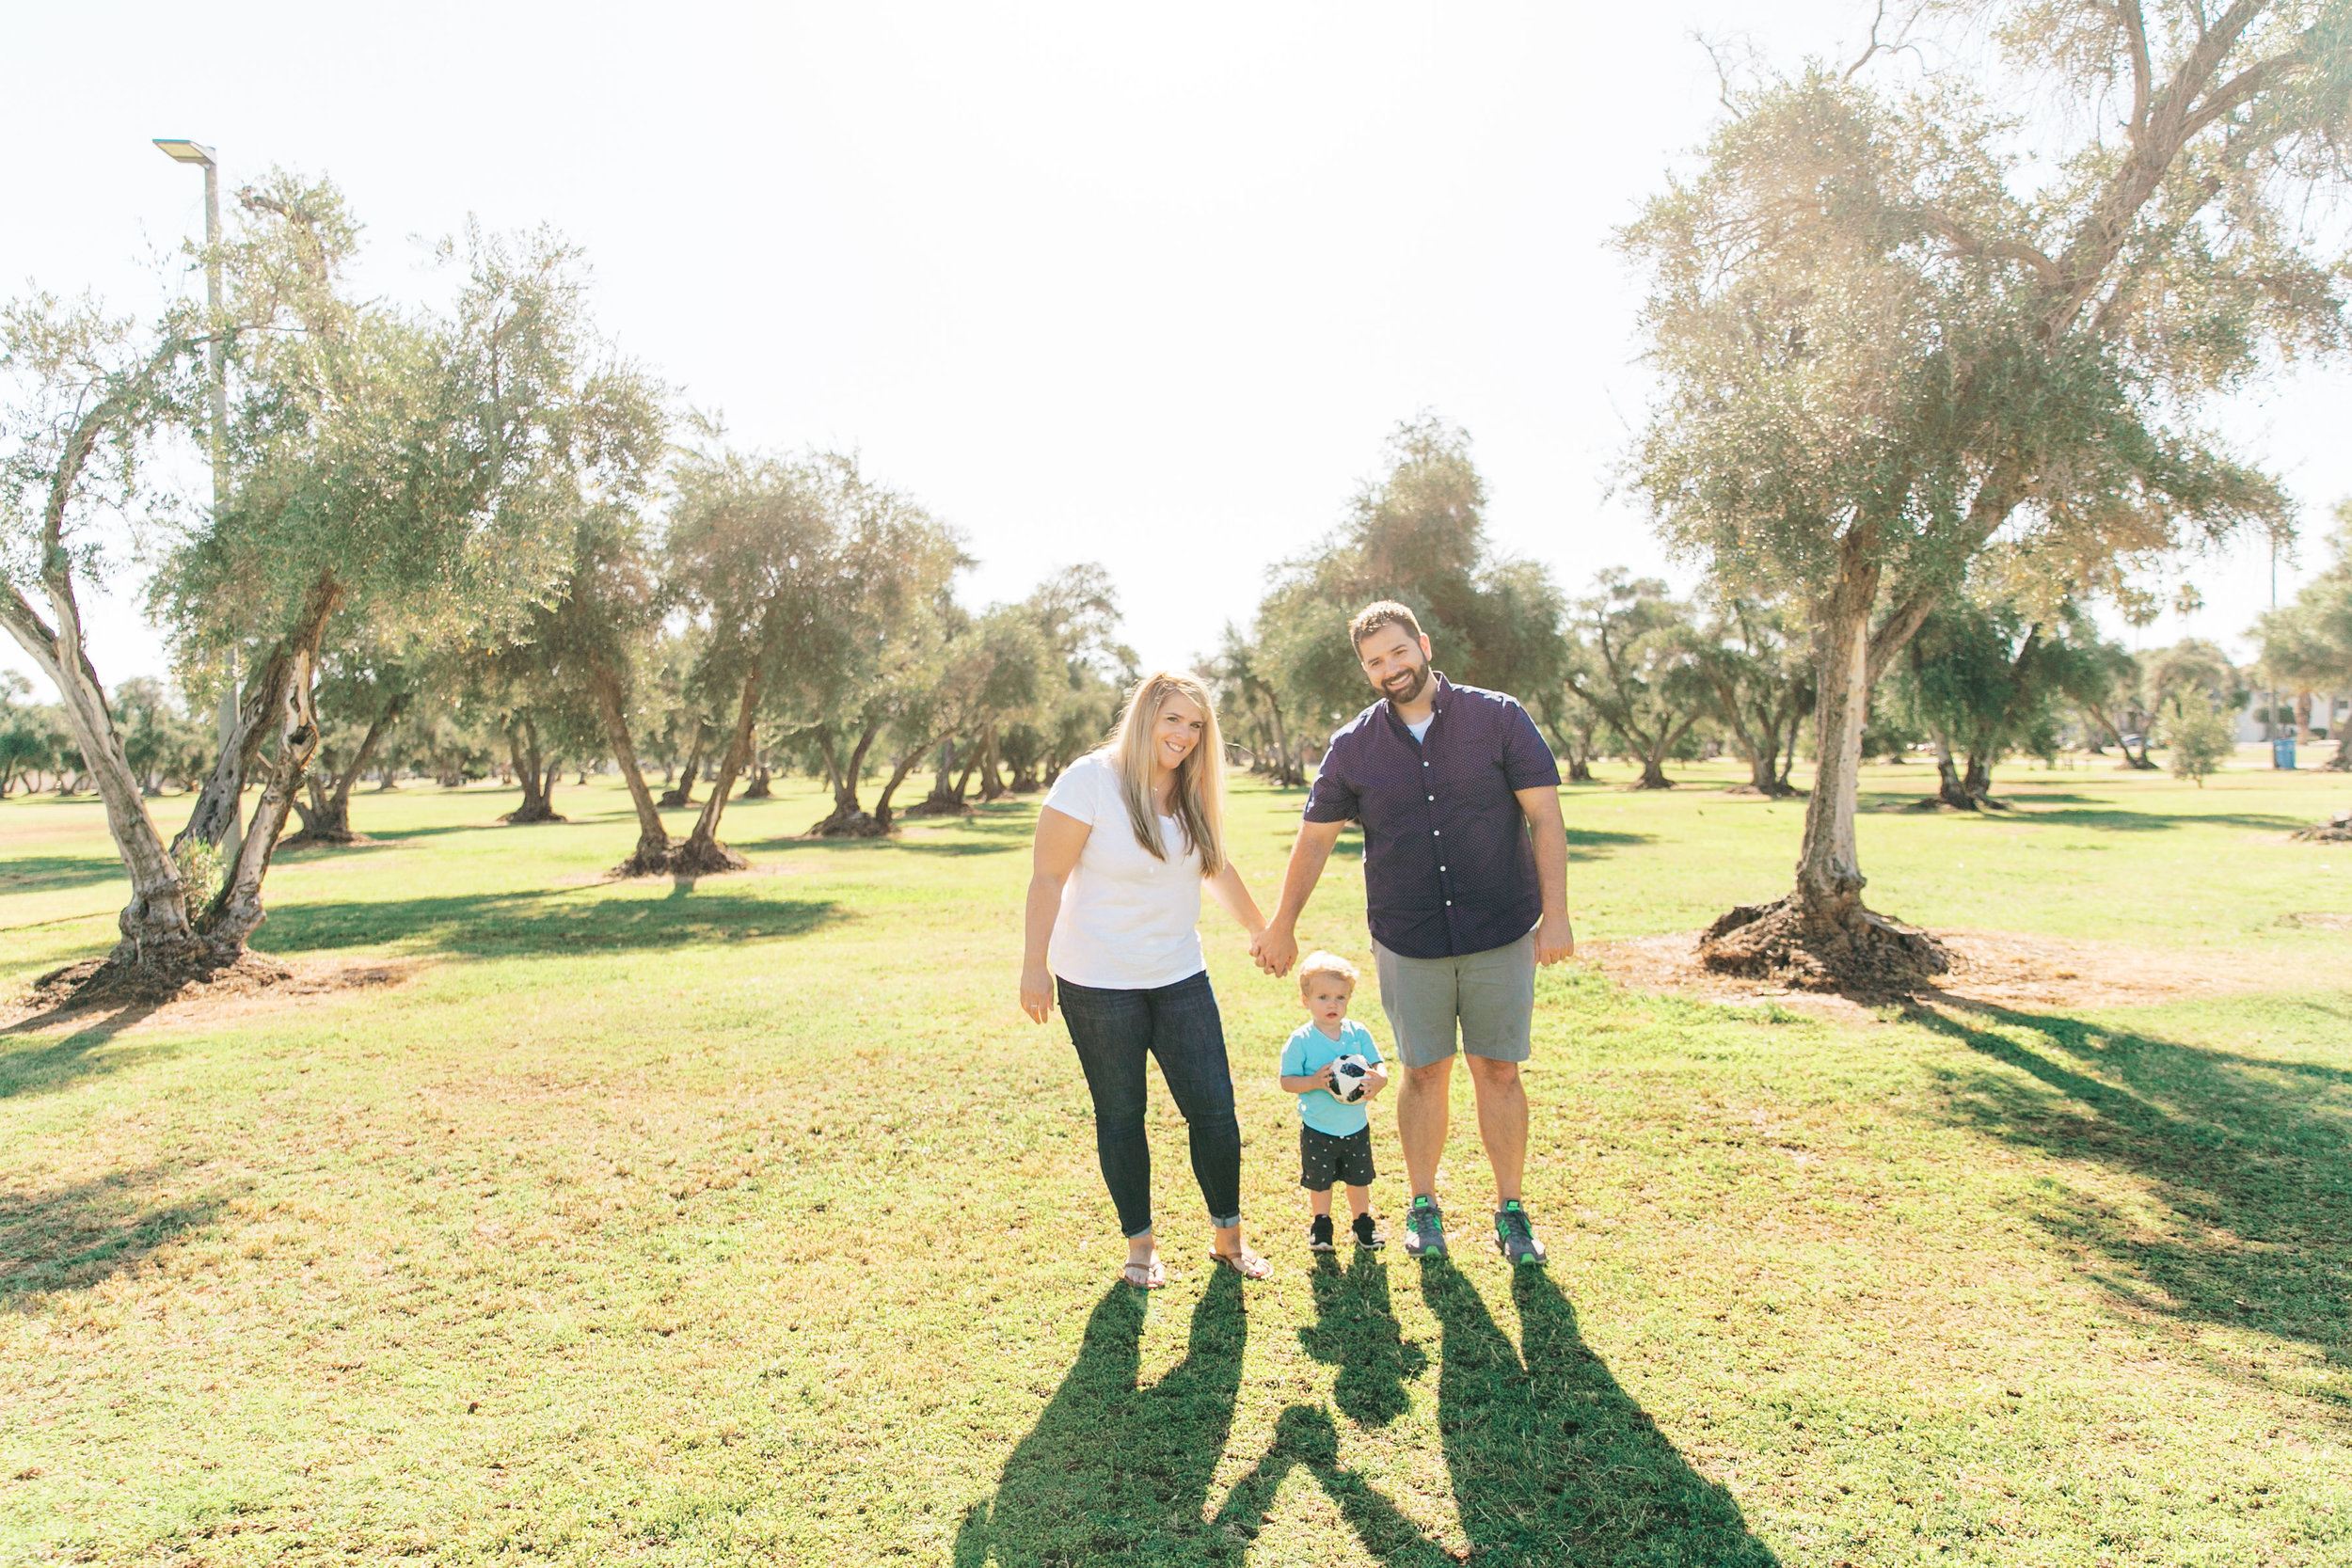 Family Lifestyle Engagement Shoot: Maura & Adam- Konsider It Done- AZ Arizona Wedding & Event Planner, Designer, Coordinator Planning in Scottsdale, Phoenix, Paradise Valley, Tempe, Gilbert, Mesa, Chandler, Tucson, Sedona